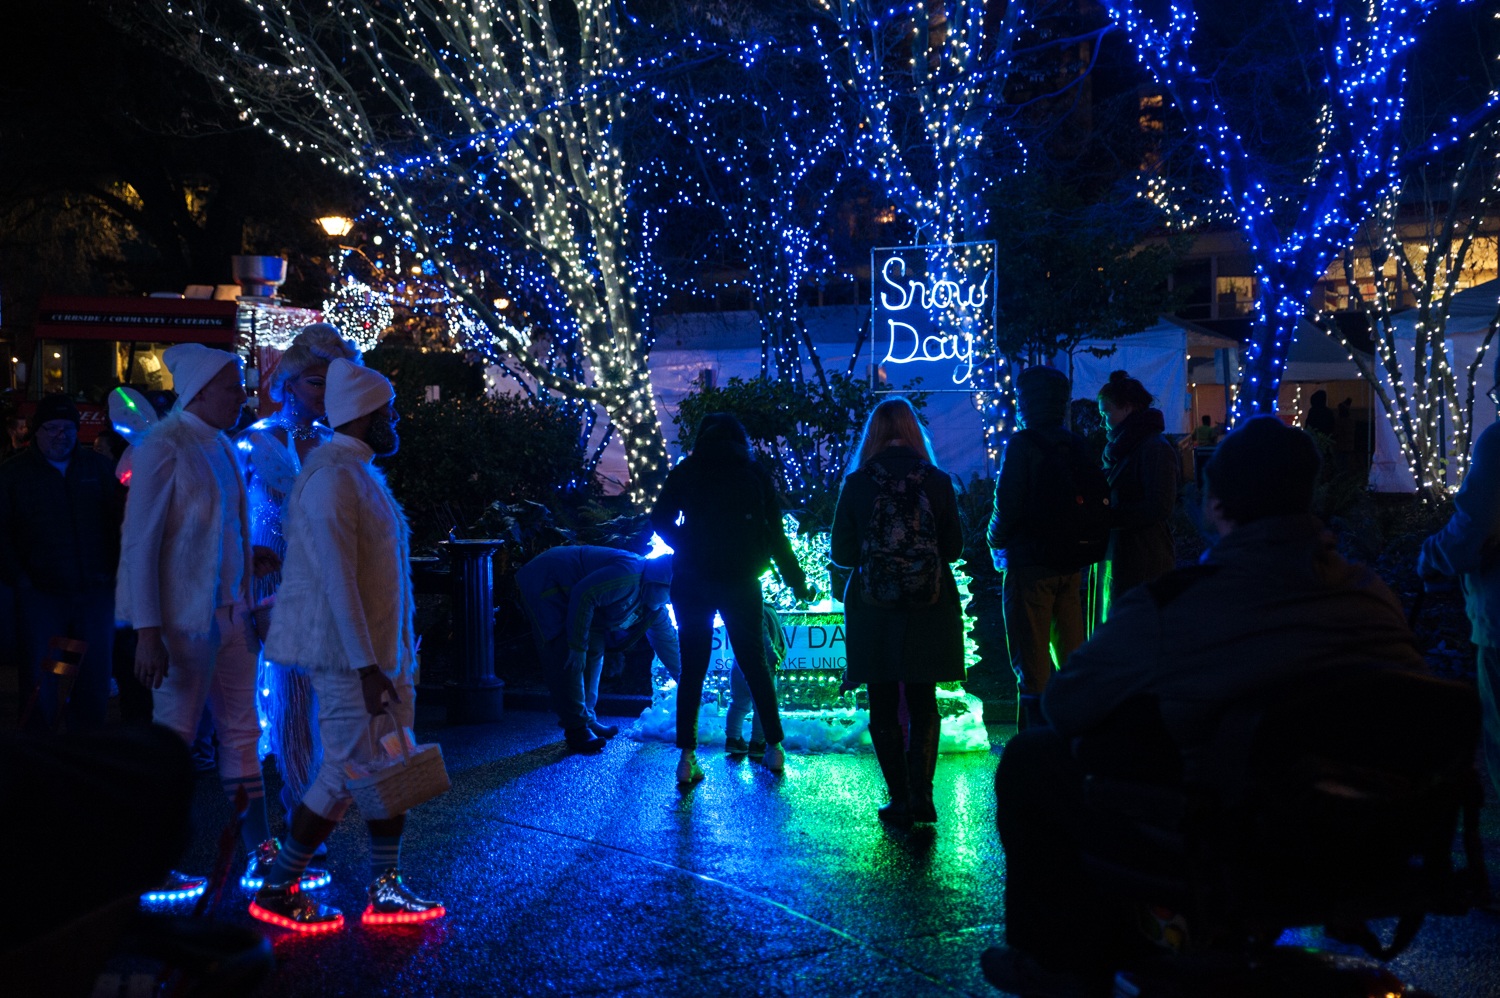 "<p>Holiday cheer, and NO worries about traffic or the city shutting down? Now THAT'S our kind of Snow Day! And it's happening nightly from Dec. 6 through Jan. 20 in Denny Park, South Lake Union. We stopped by a little preview of what patrons can expect from the immersive light installation, complete with 300,000 lights, displayed the park this holiday season. And guys - it's good. More info{&nbsp;}<a  href=""https://www.snowdayslu.com/"" target=""_blank"" title=""https://www.snowdayslu.com/"">online</a>. (Image: Elizabeth Crook / Seattle Refined){&nbsp;}</p>"